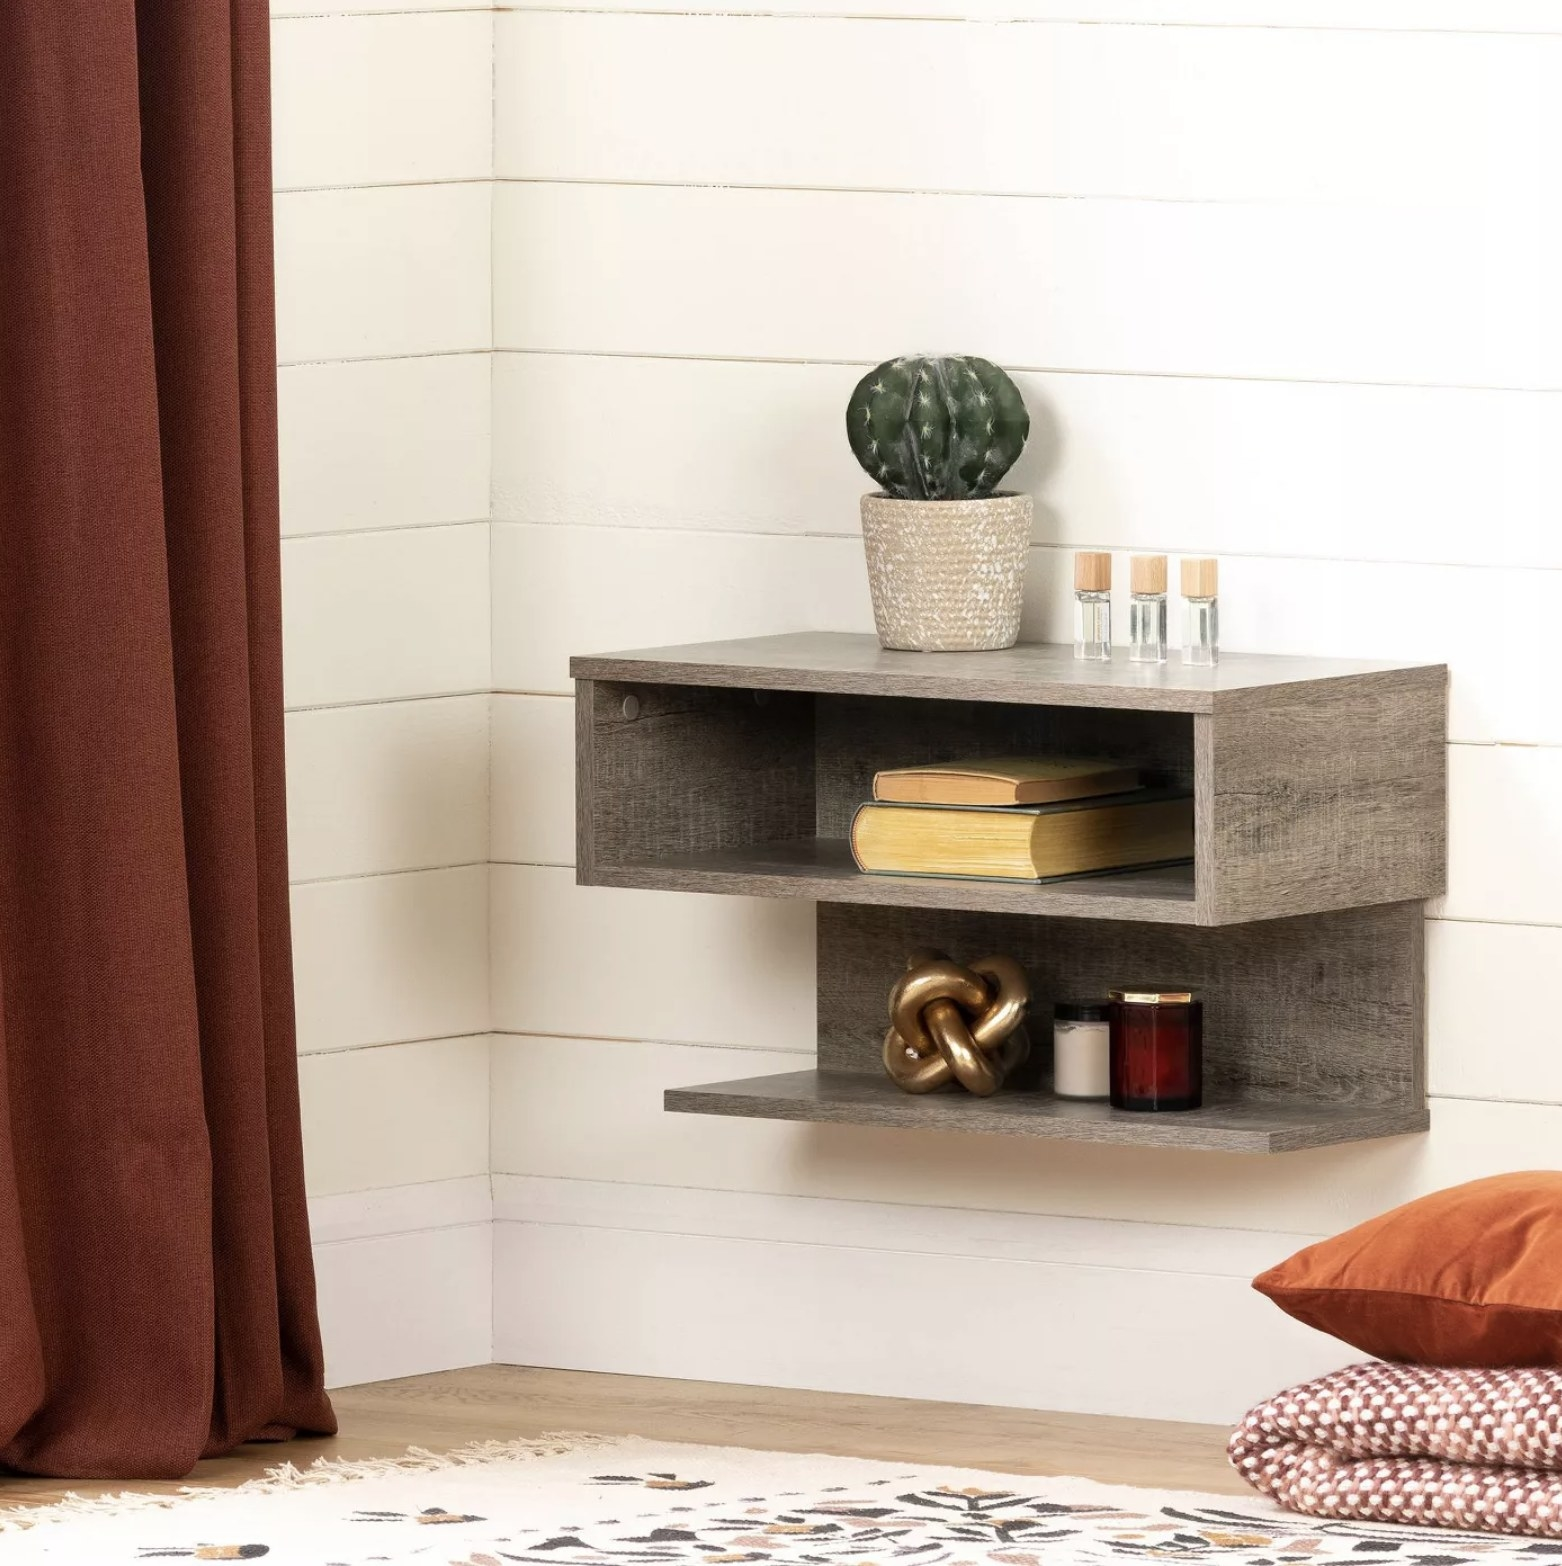 A legless gray nightstand with two shelves that it attached to the wall